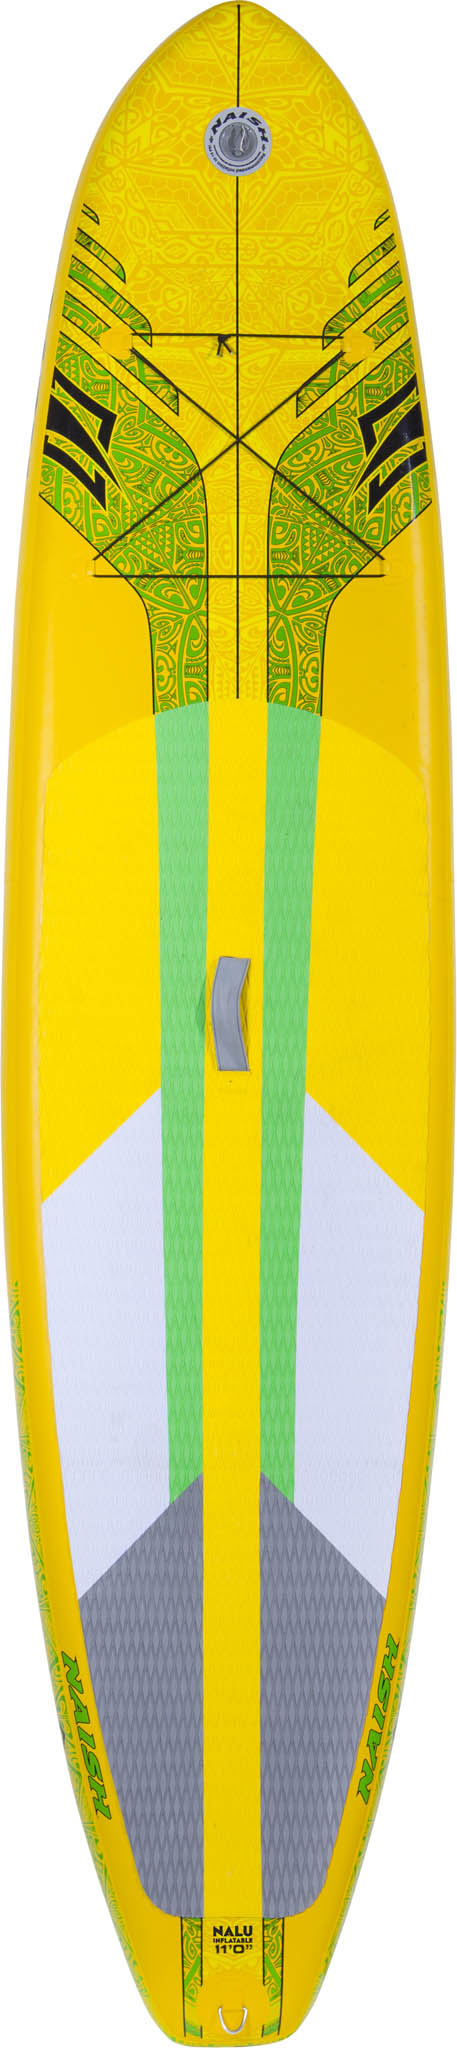 Naish Nalu Inflatable SUP